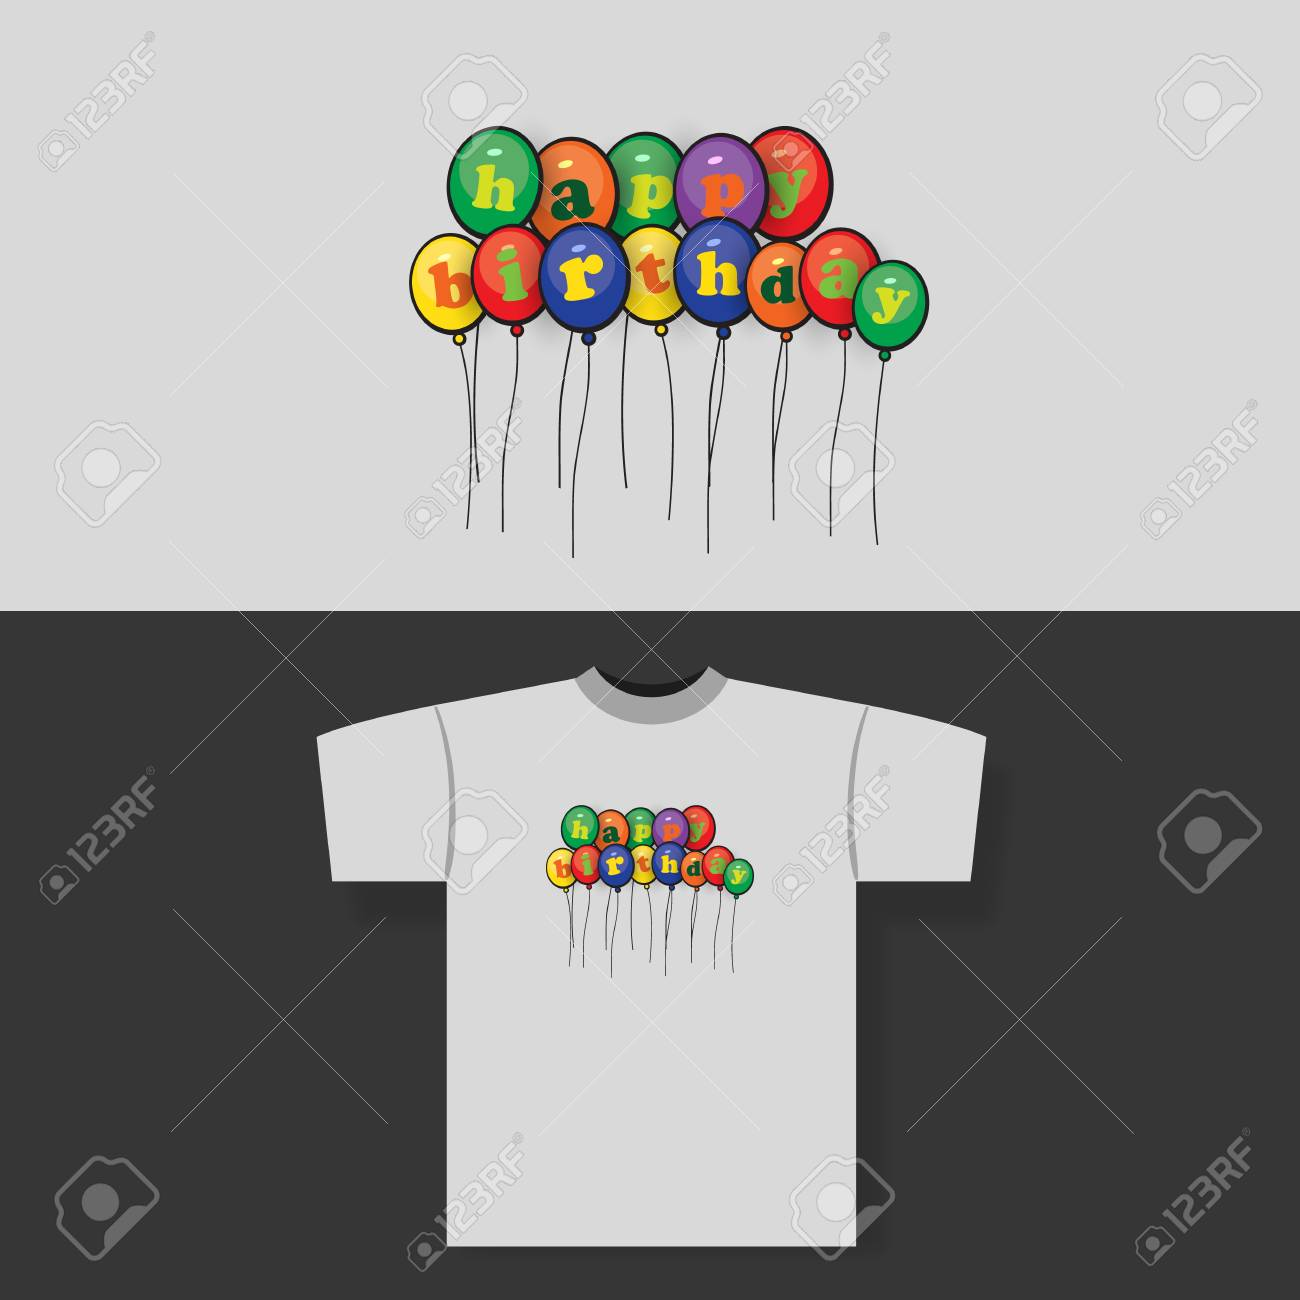 e72a3263 T-shirt Print Design Concept with Colorful Happy Birthday Balloons Stock  Vector - 58738643